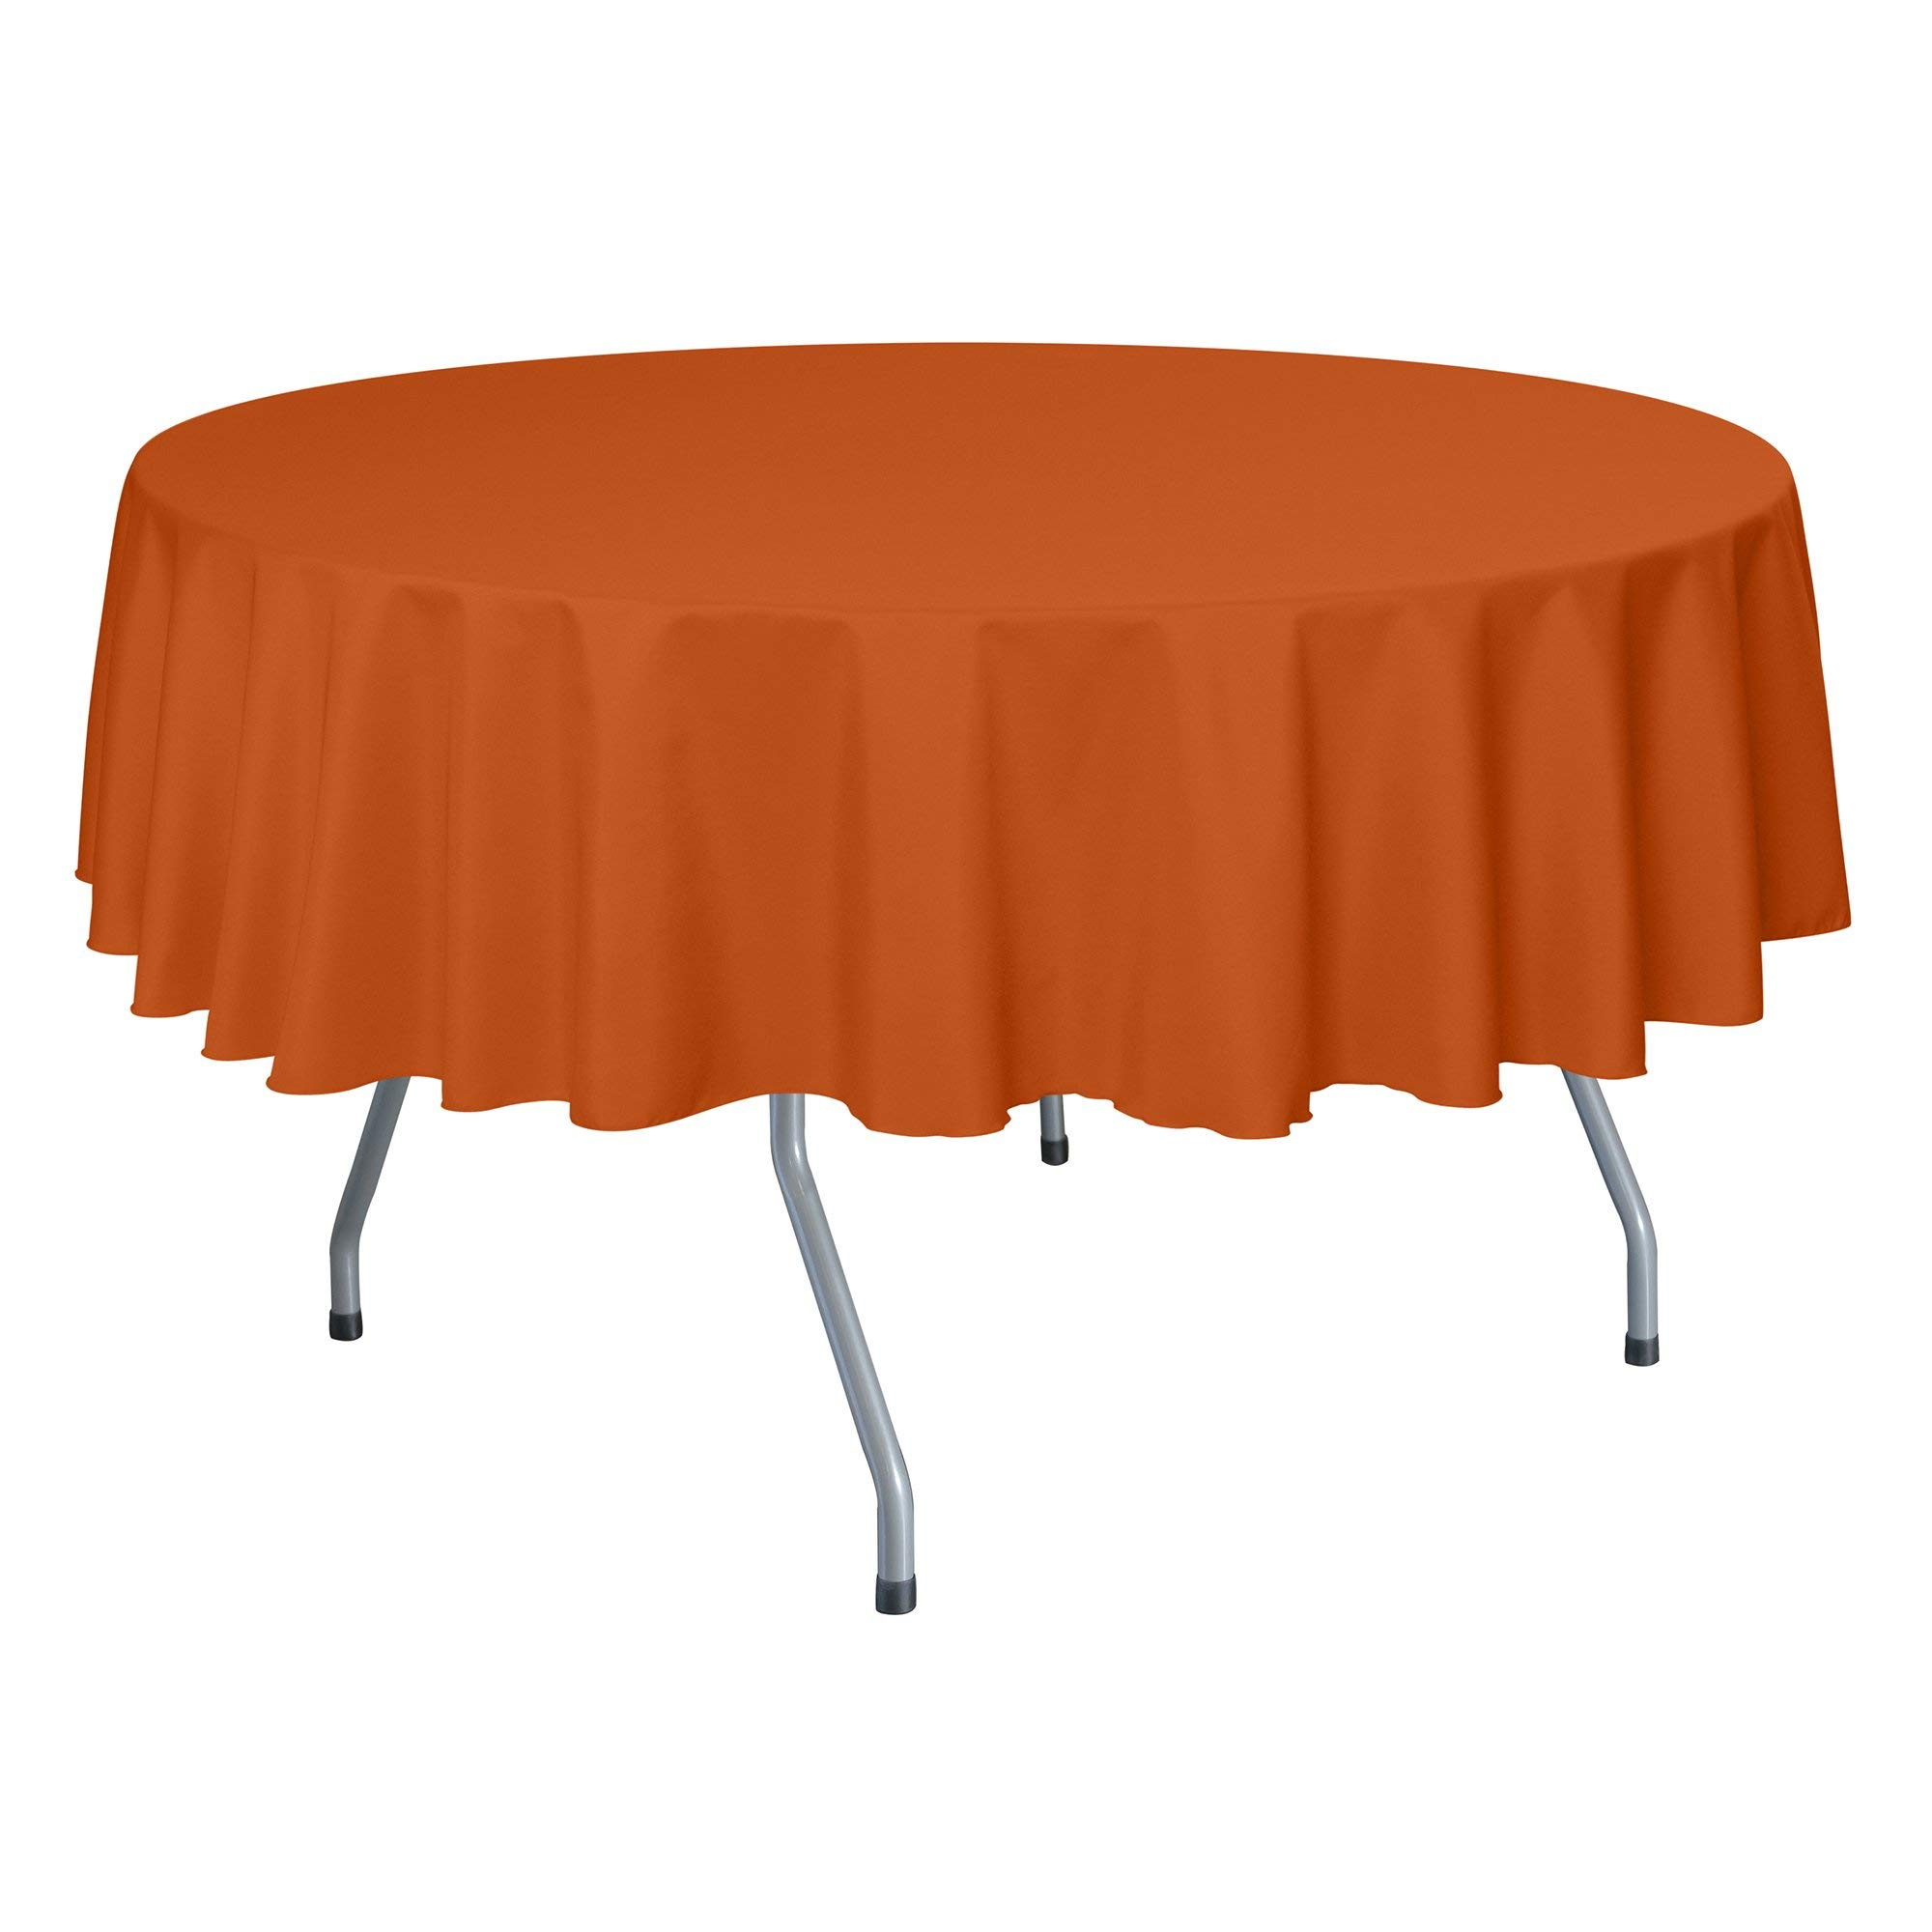 Ultimate Textile -10 Pack- 72-Inch Round Polyester Linen Tablecloth, Orange